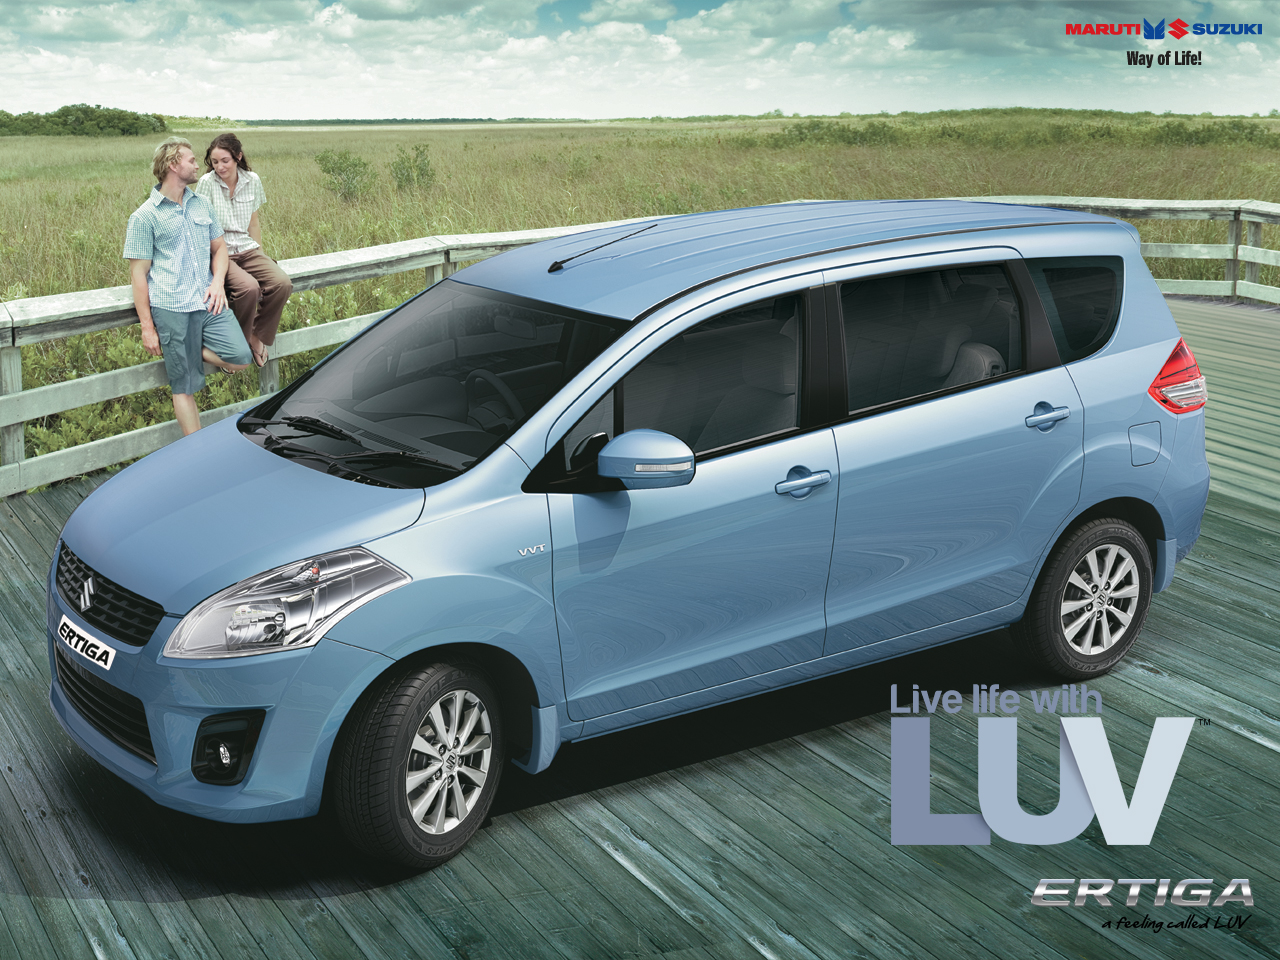 Best Mpv Car In India >> SUZUKI Ertiga specs - 2012, 2013, 2014, 2015, 2016, 2017, 2018 - autoevolution